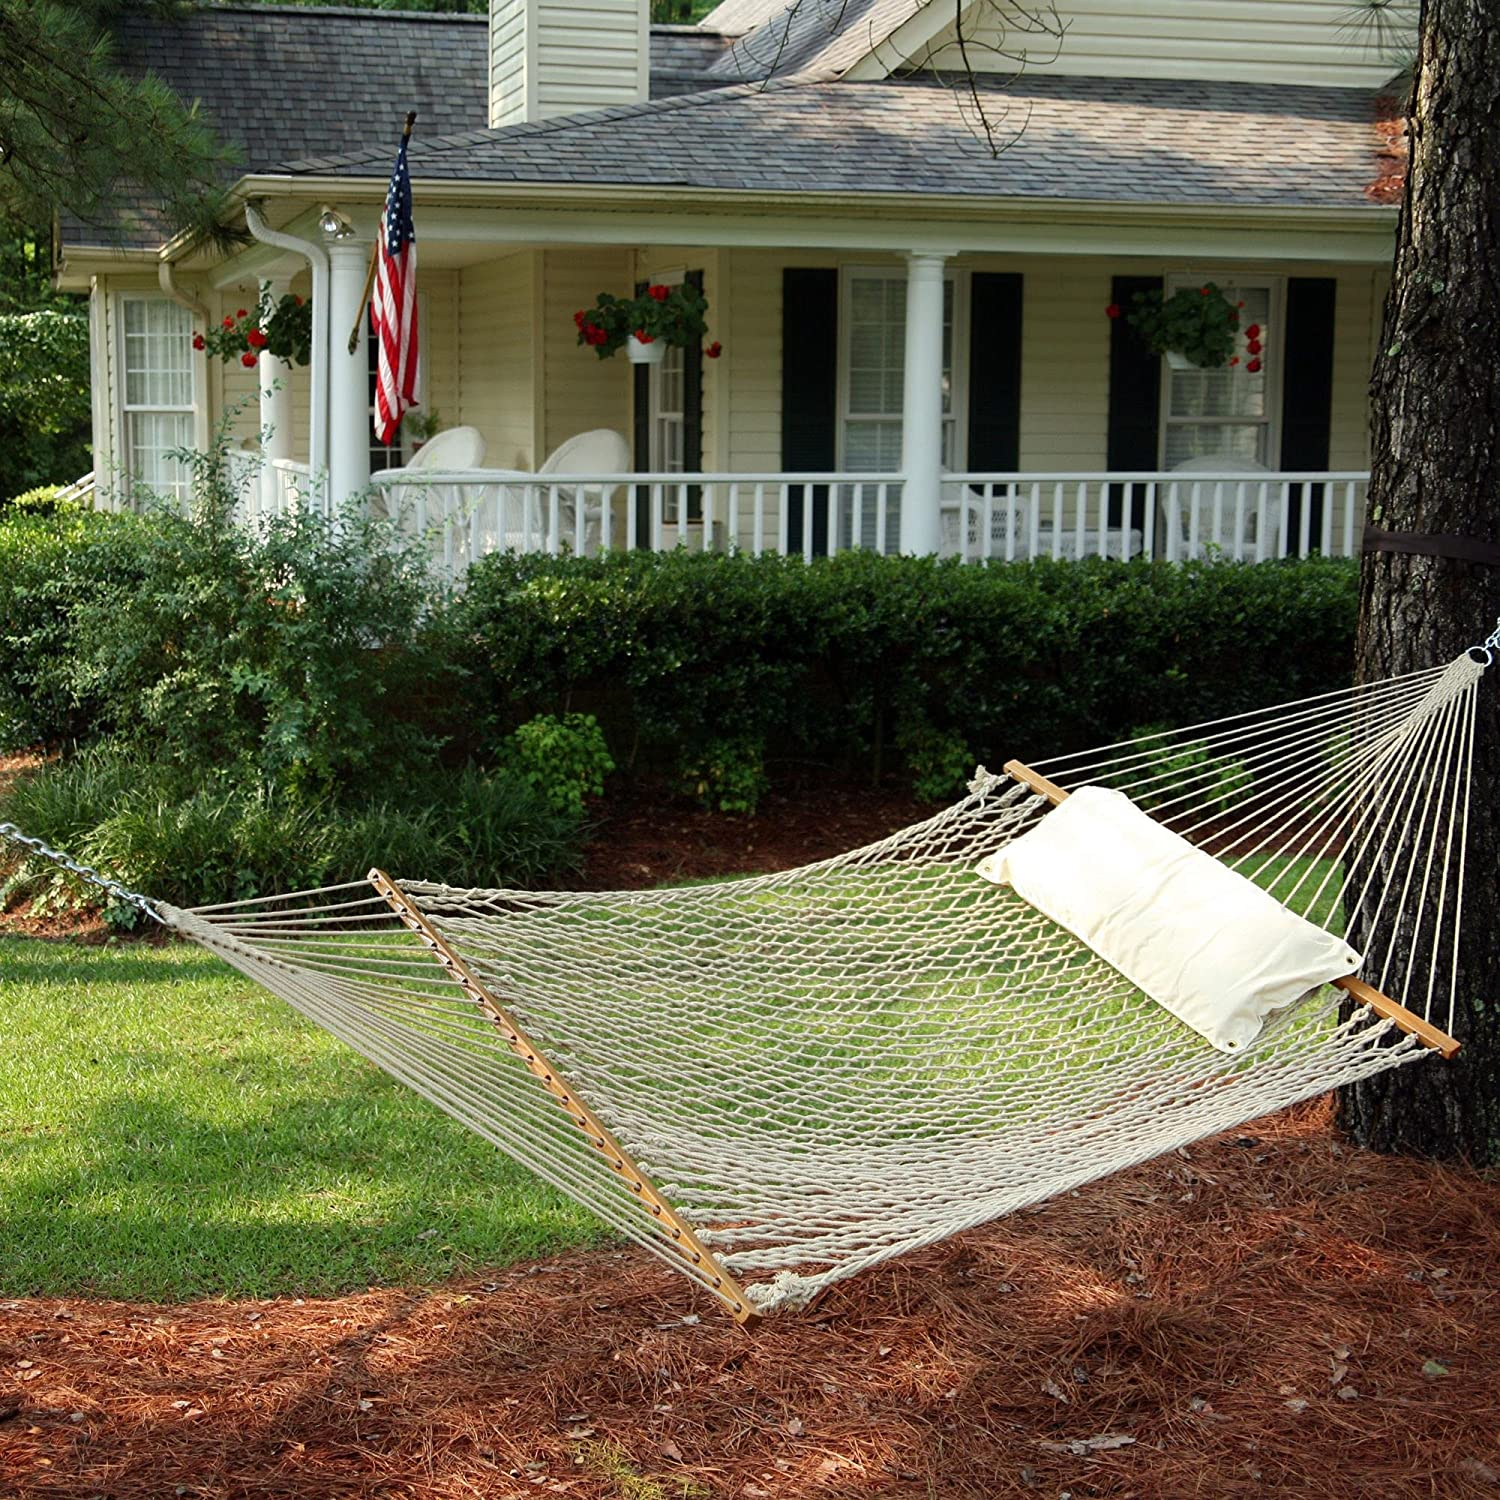 broadway pawley beach rentals s shops vacation at guide local insider hammock island the shopping pawleys